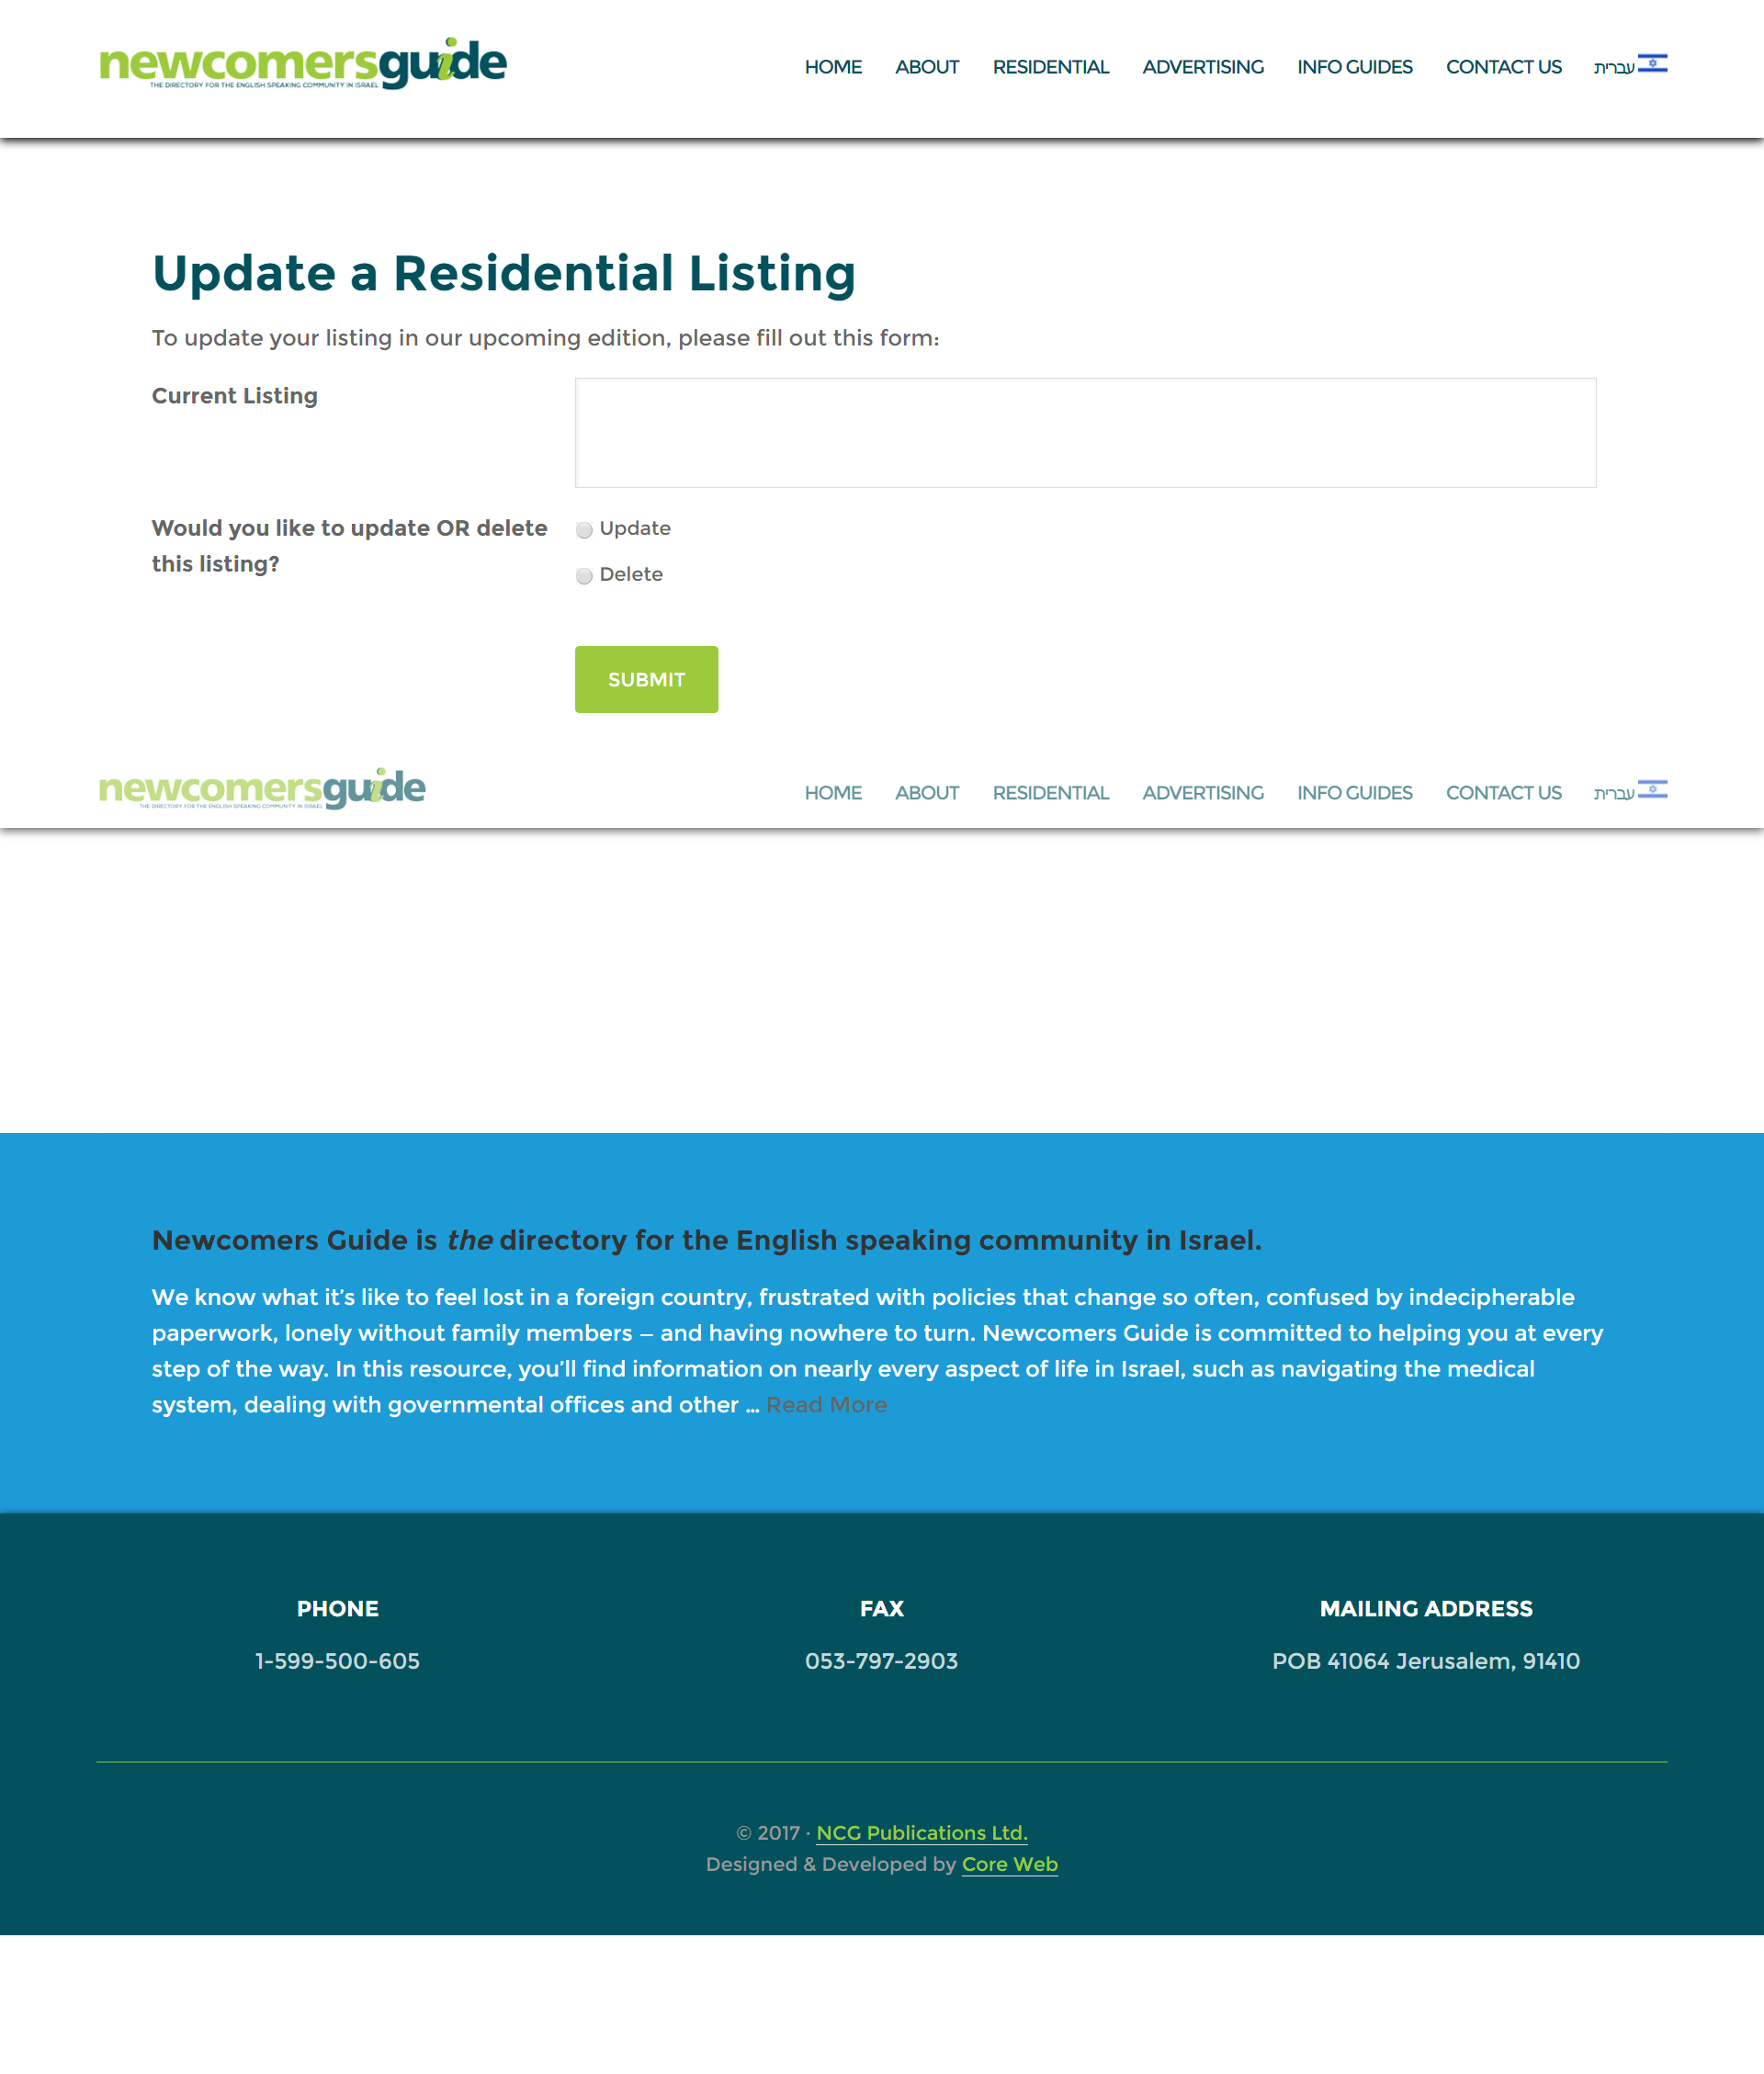 NewcomersGuide.co.il Residential Update Page